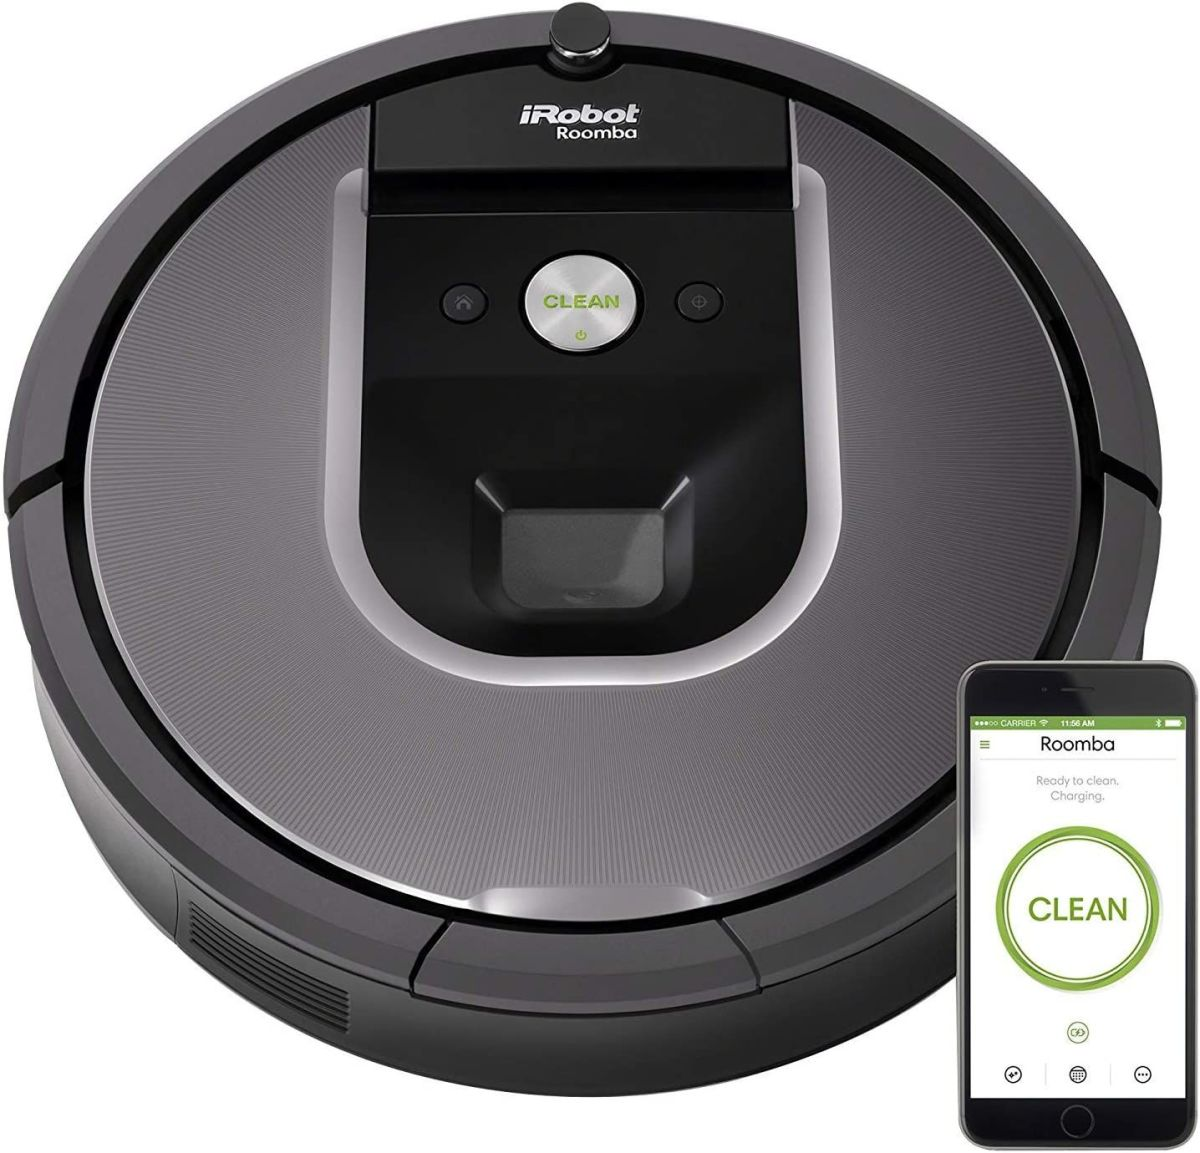 Save $120 on a renewed Roomba 960 at Amazon